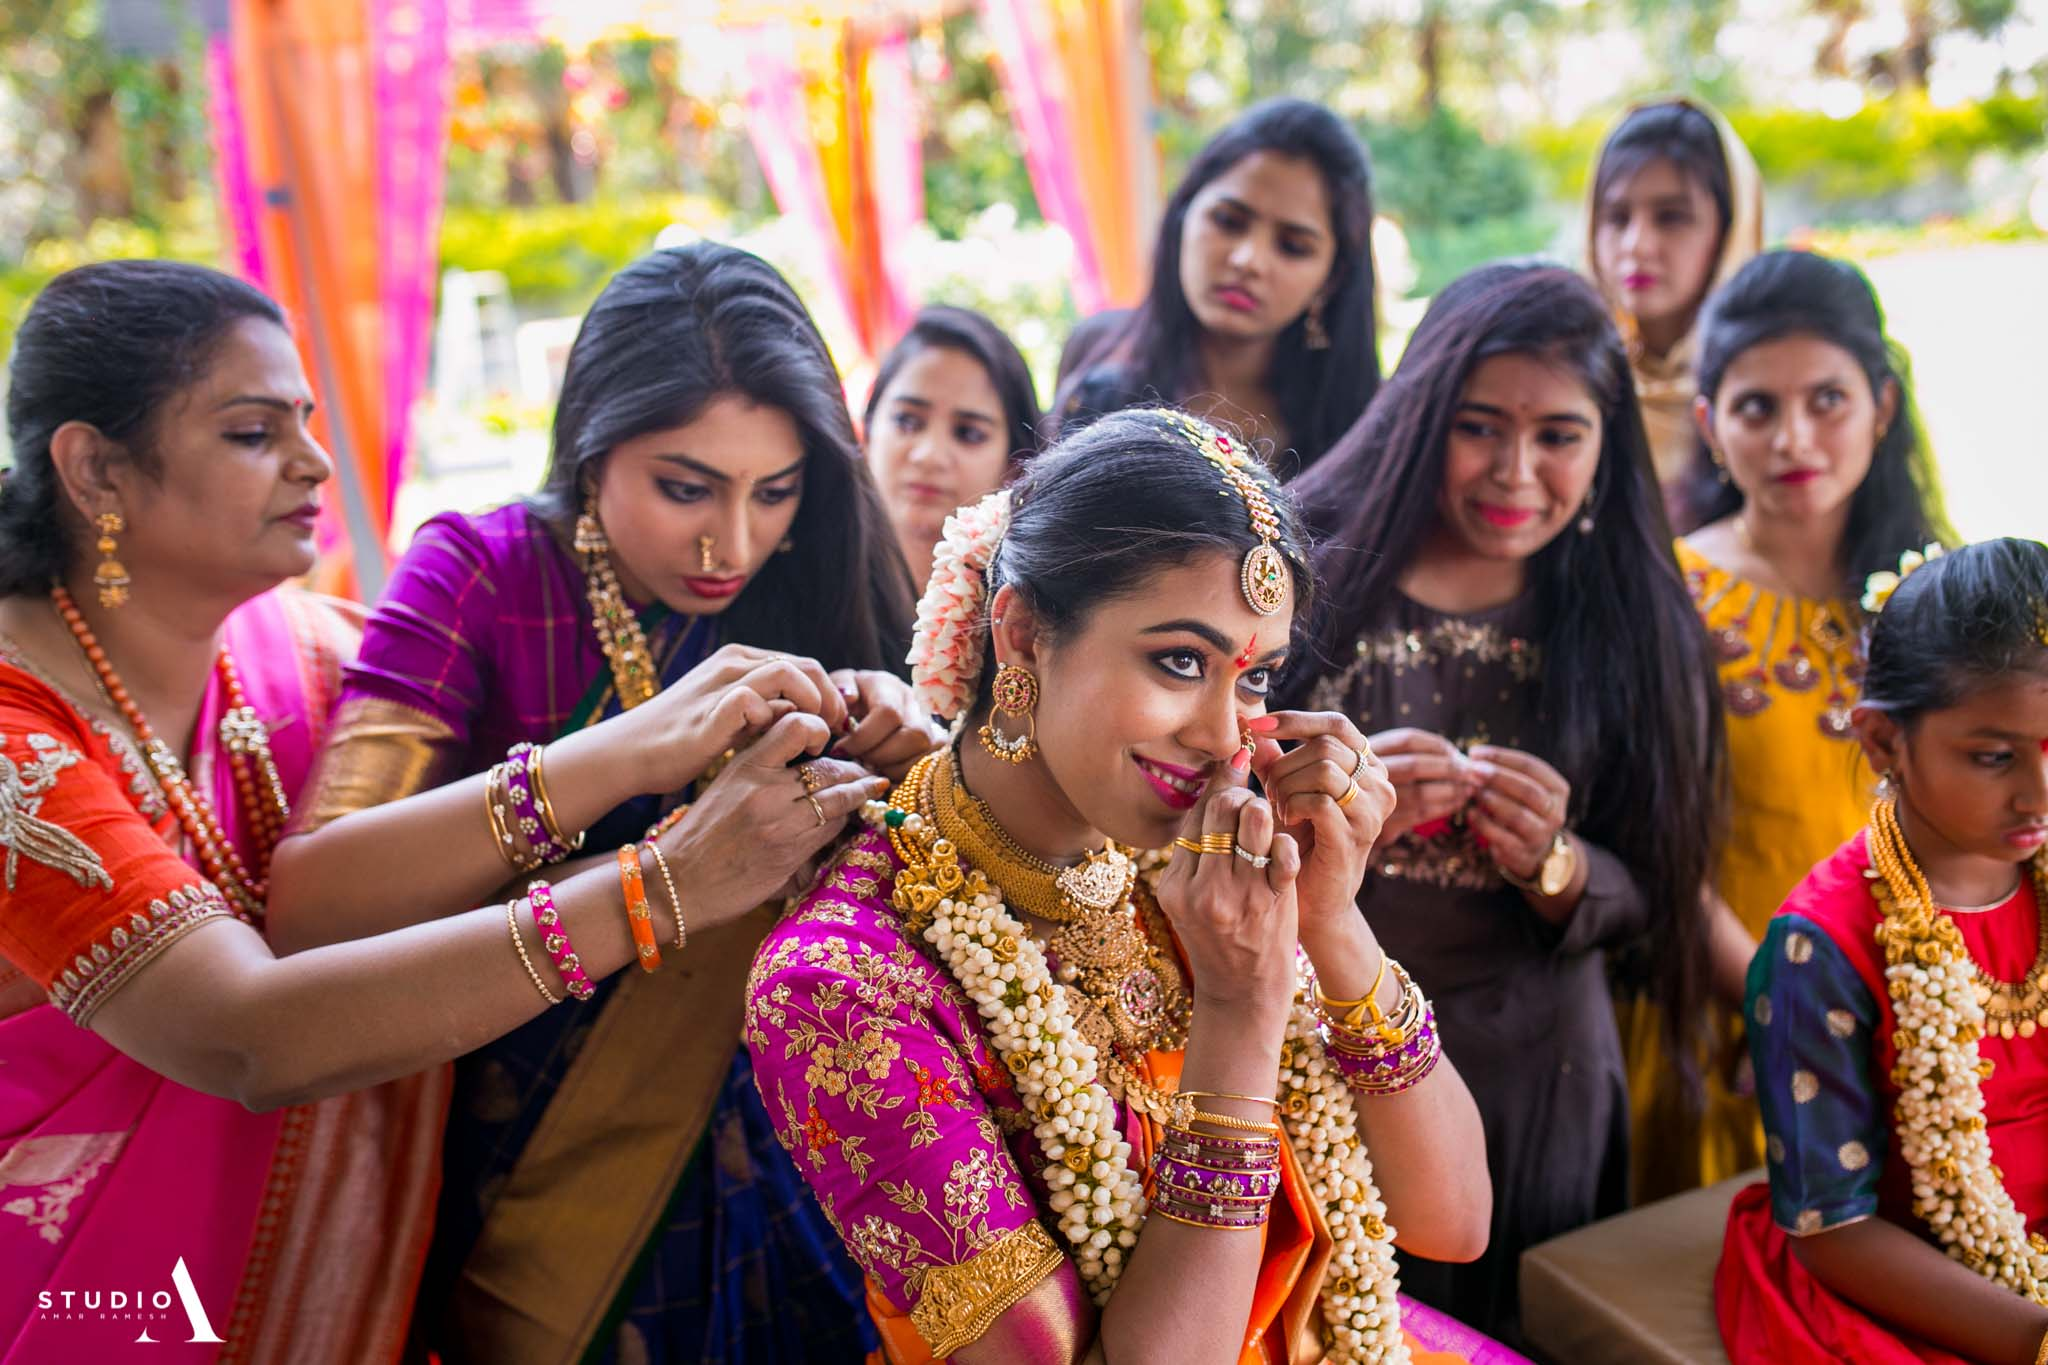 Destination-Wedding-photography-chennai-6